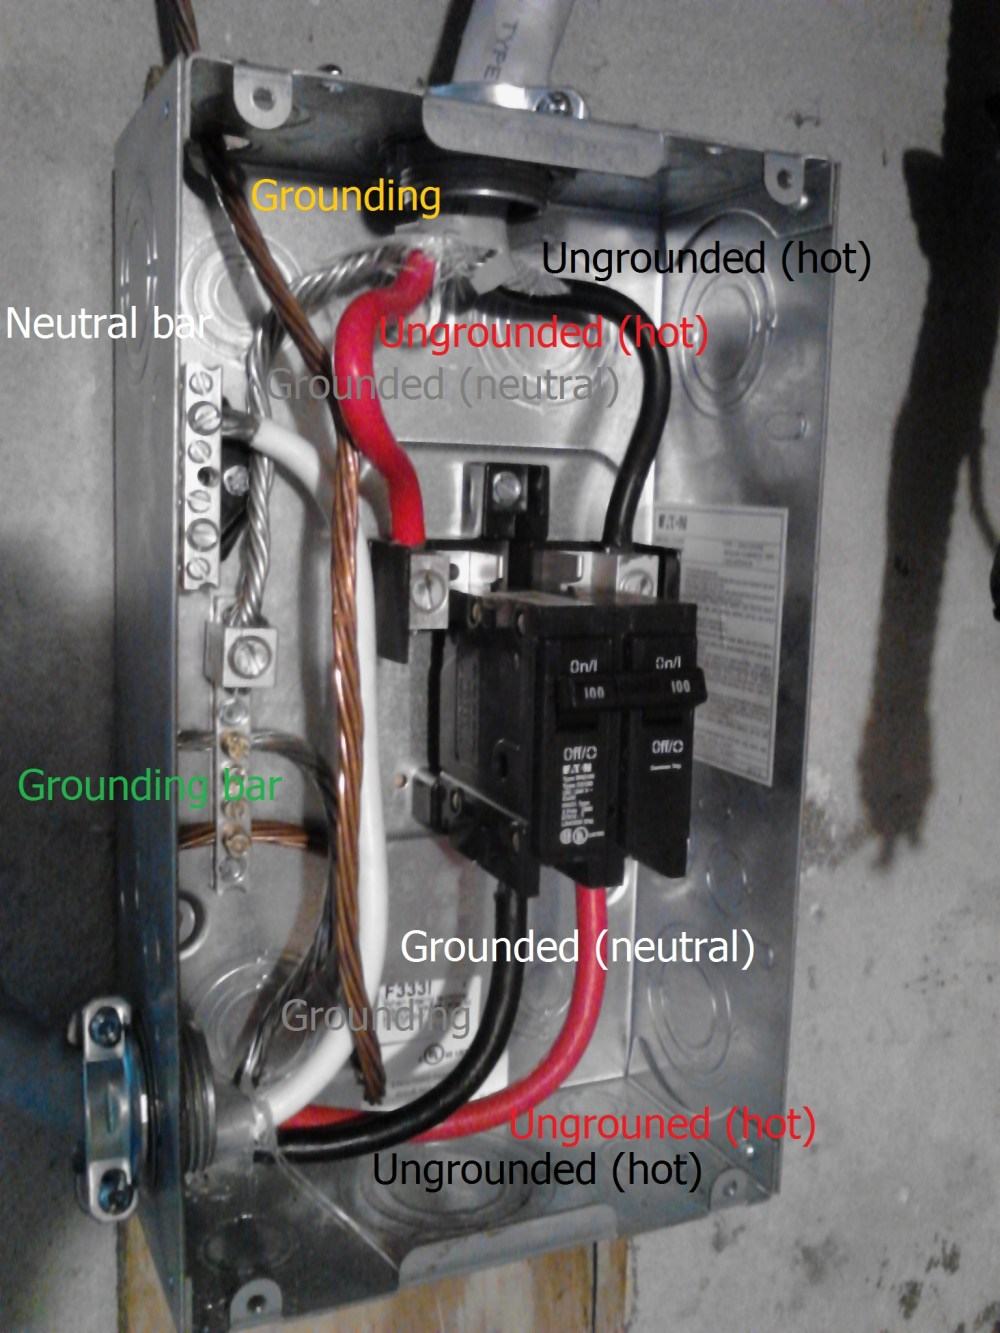 medium resolution of wiring a disconnect box everything wiring diagram rh 5 skillformation de ac disconnect wiring diagram ac disconnect box wiring